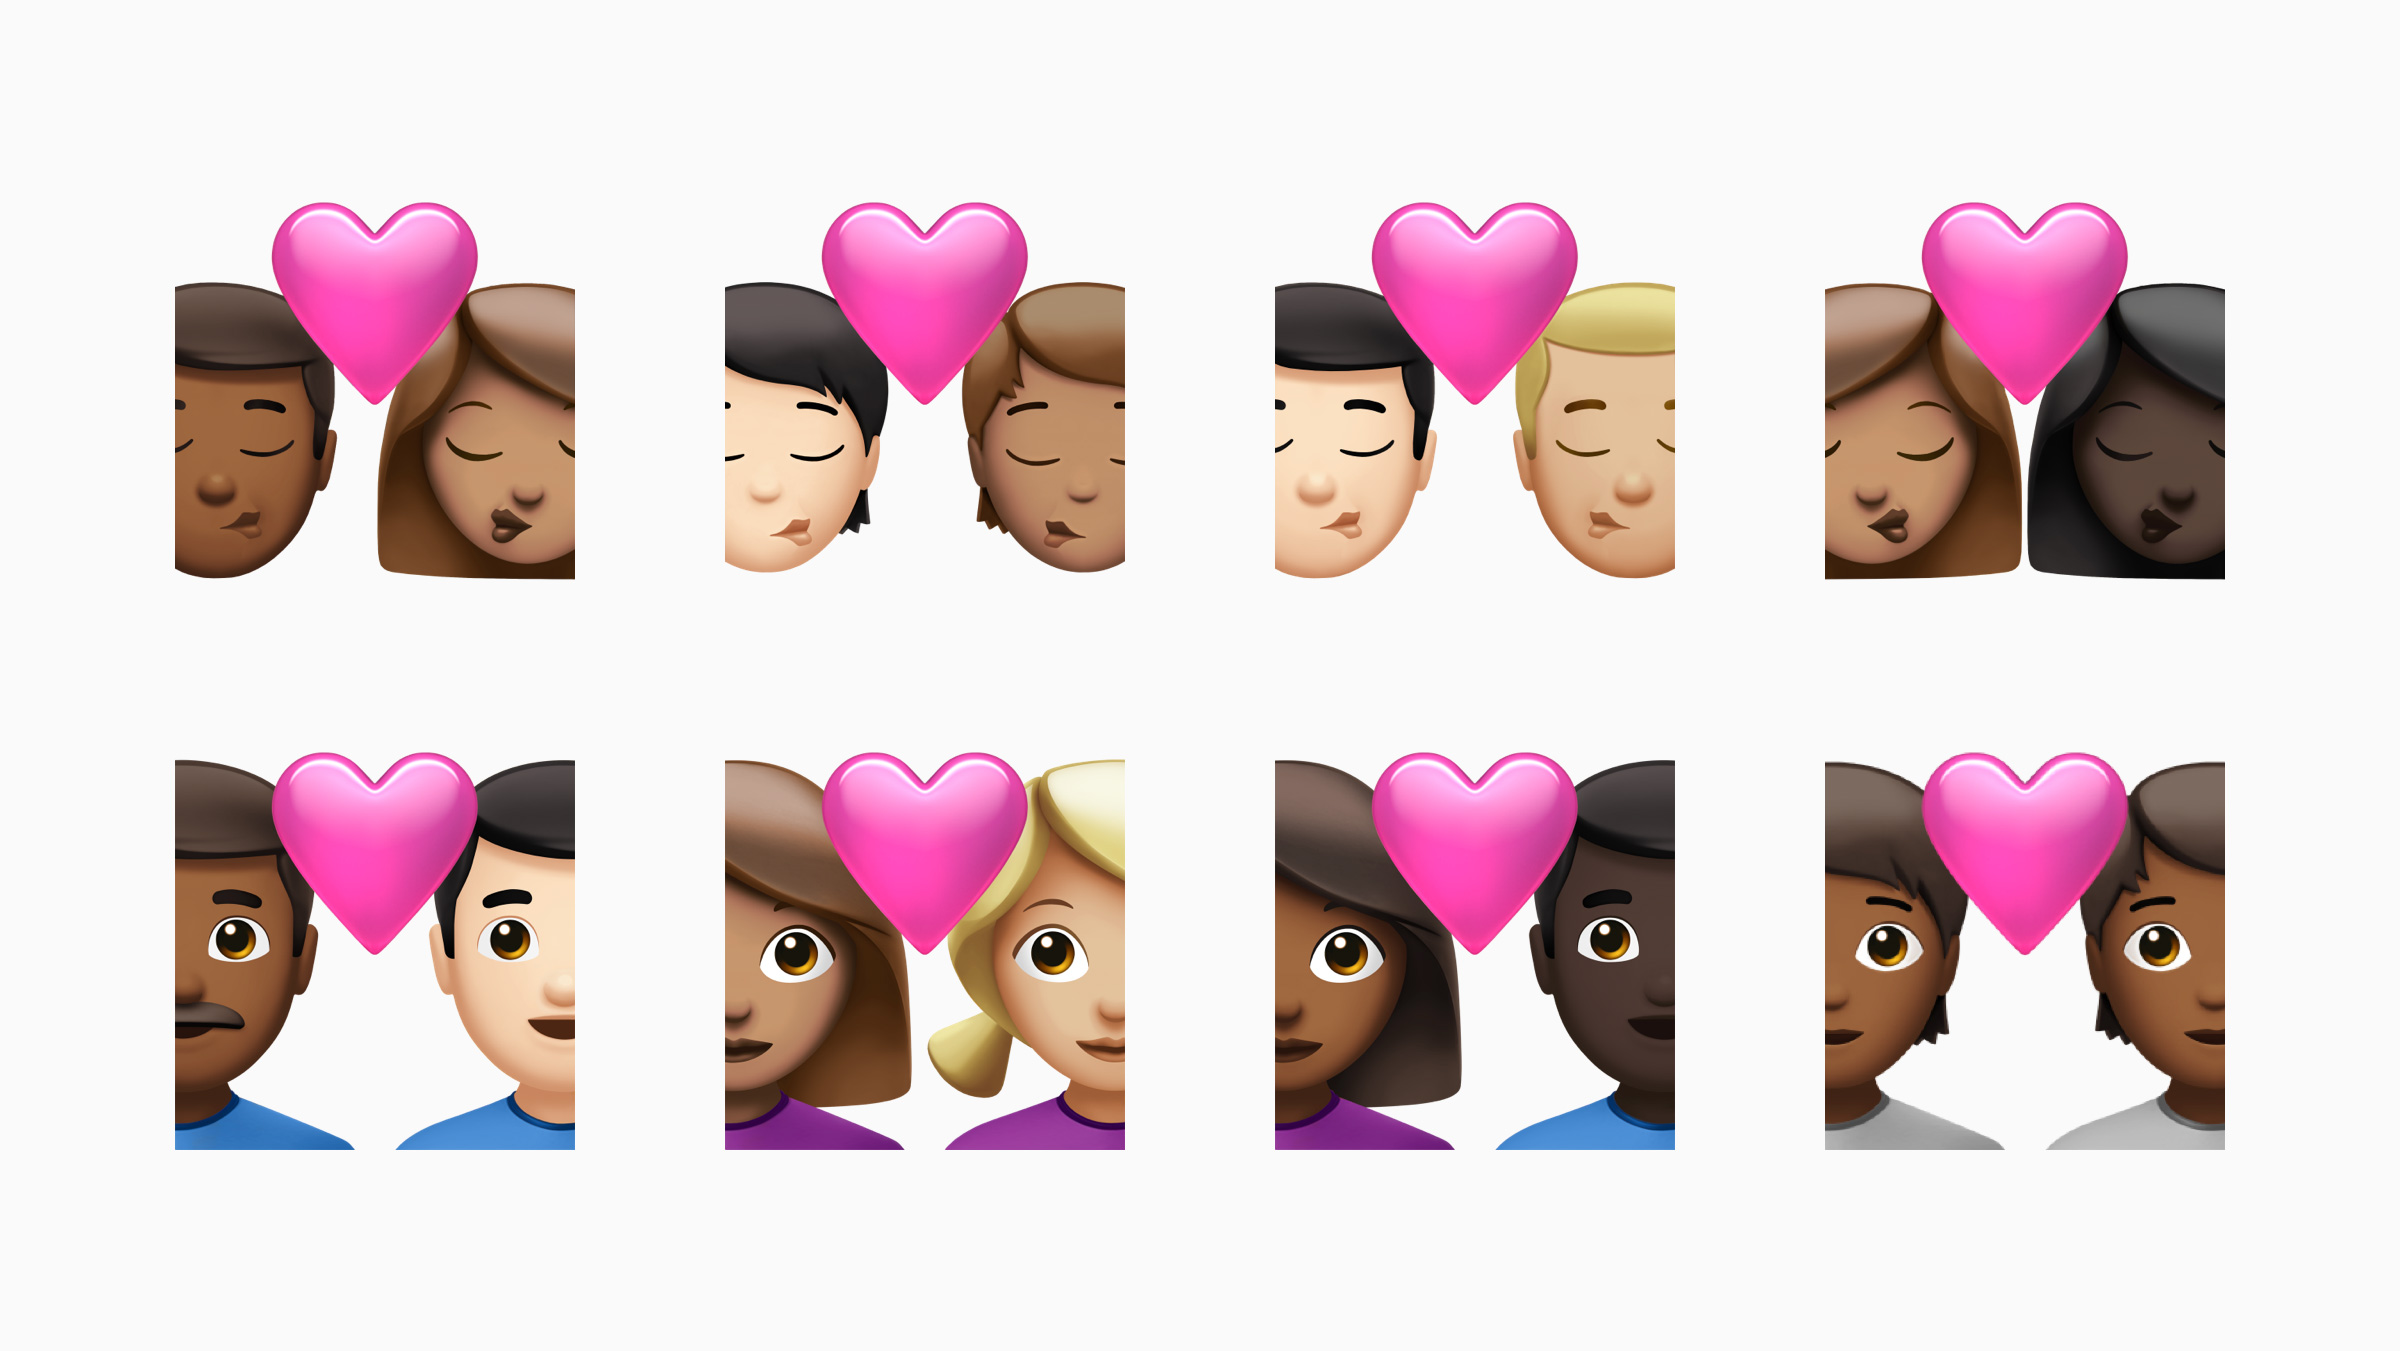 iOS 14.5 Update Brings Unlock iPhone with Apple Watch, AirTag Support, Separate Skin Tone Variations for Emoji with Couples, and More